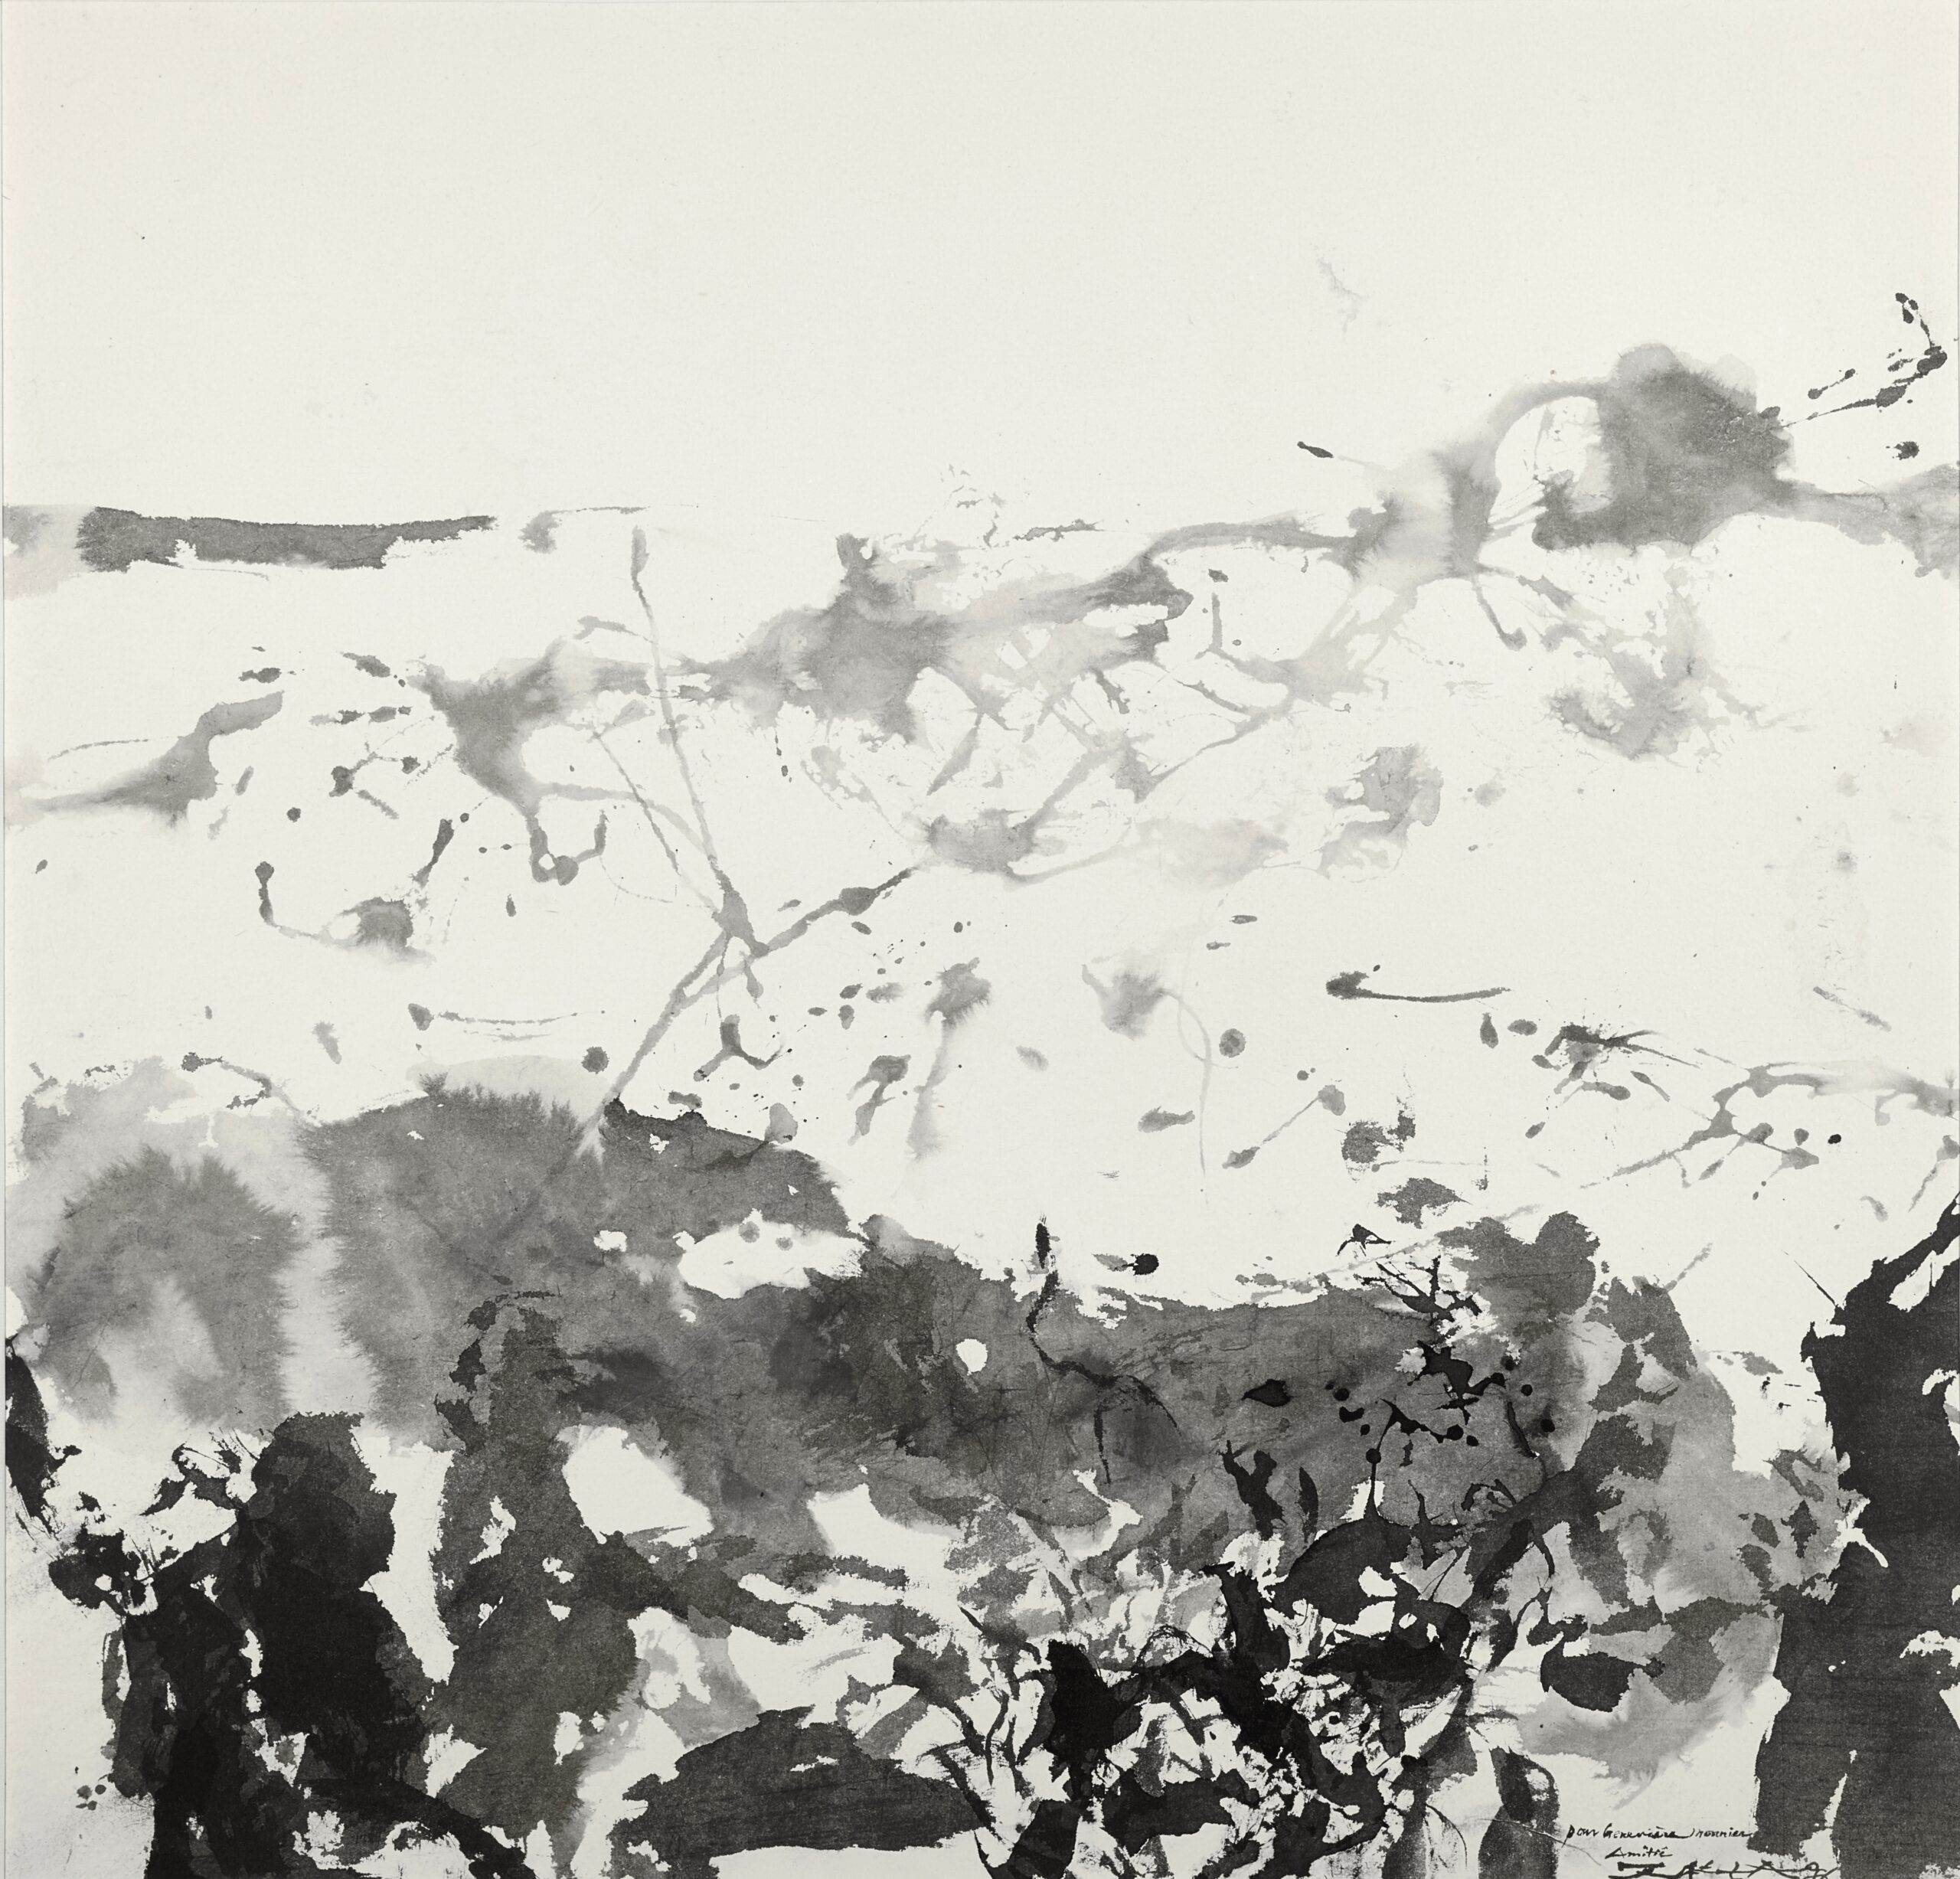 Zao Wou-Ki, Untitled, 1986 Signed and dated lower right Dedicated lower right: Pour Genevieve Monnier, Amities, Zao Wou Ki 86 Ink on paper 67.5 x 69 cm